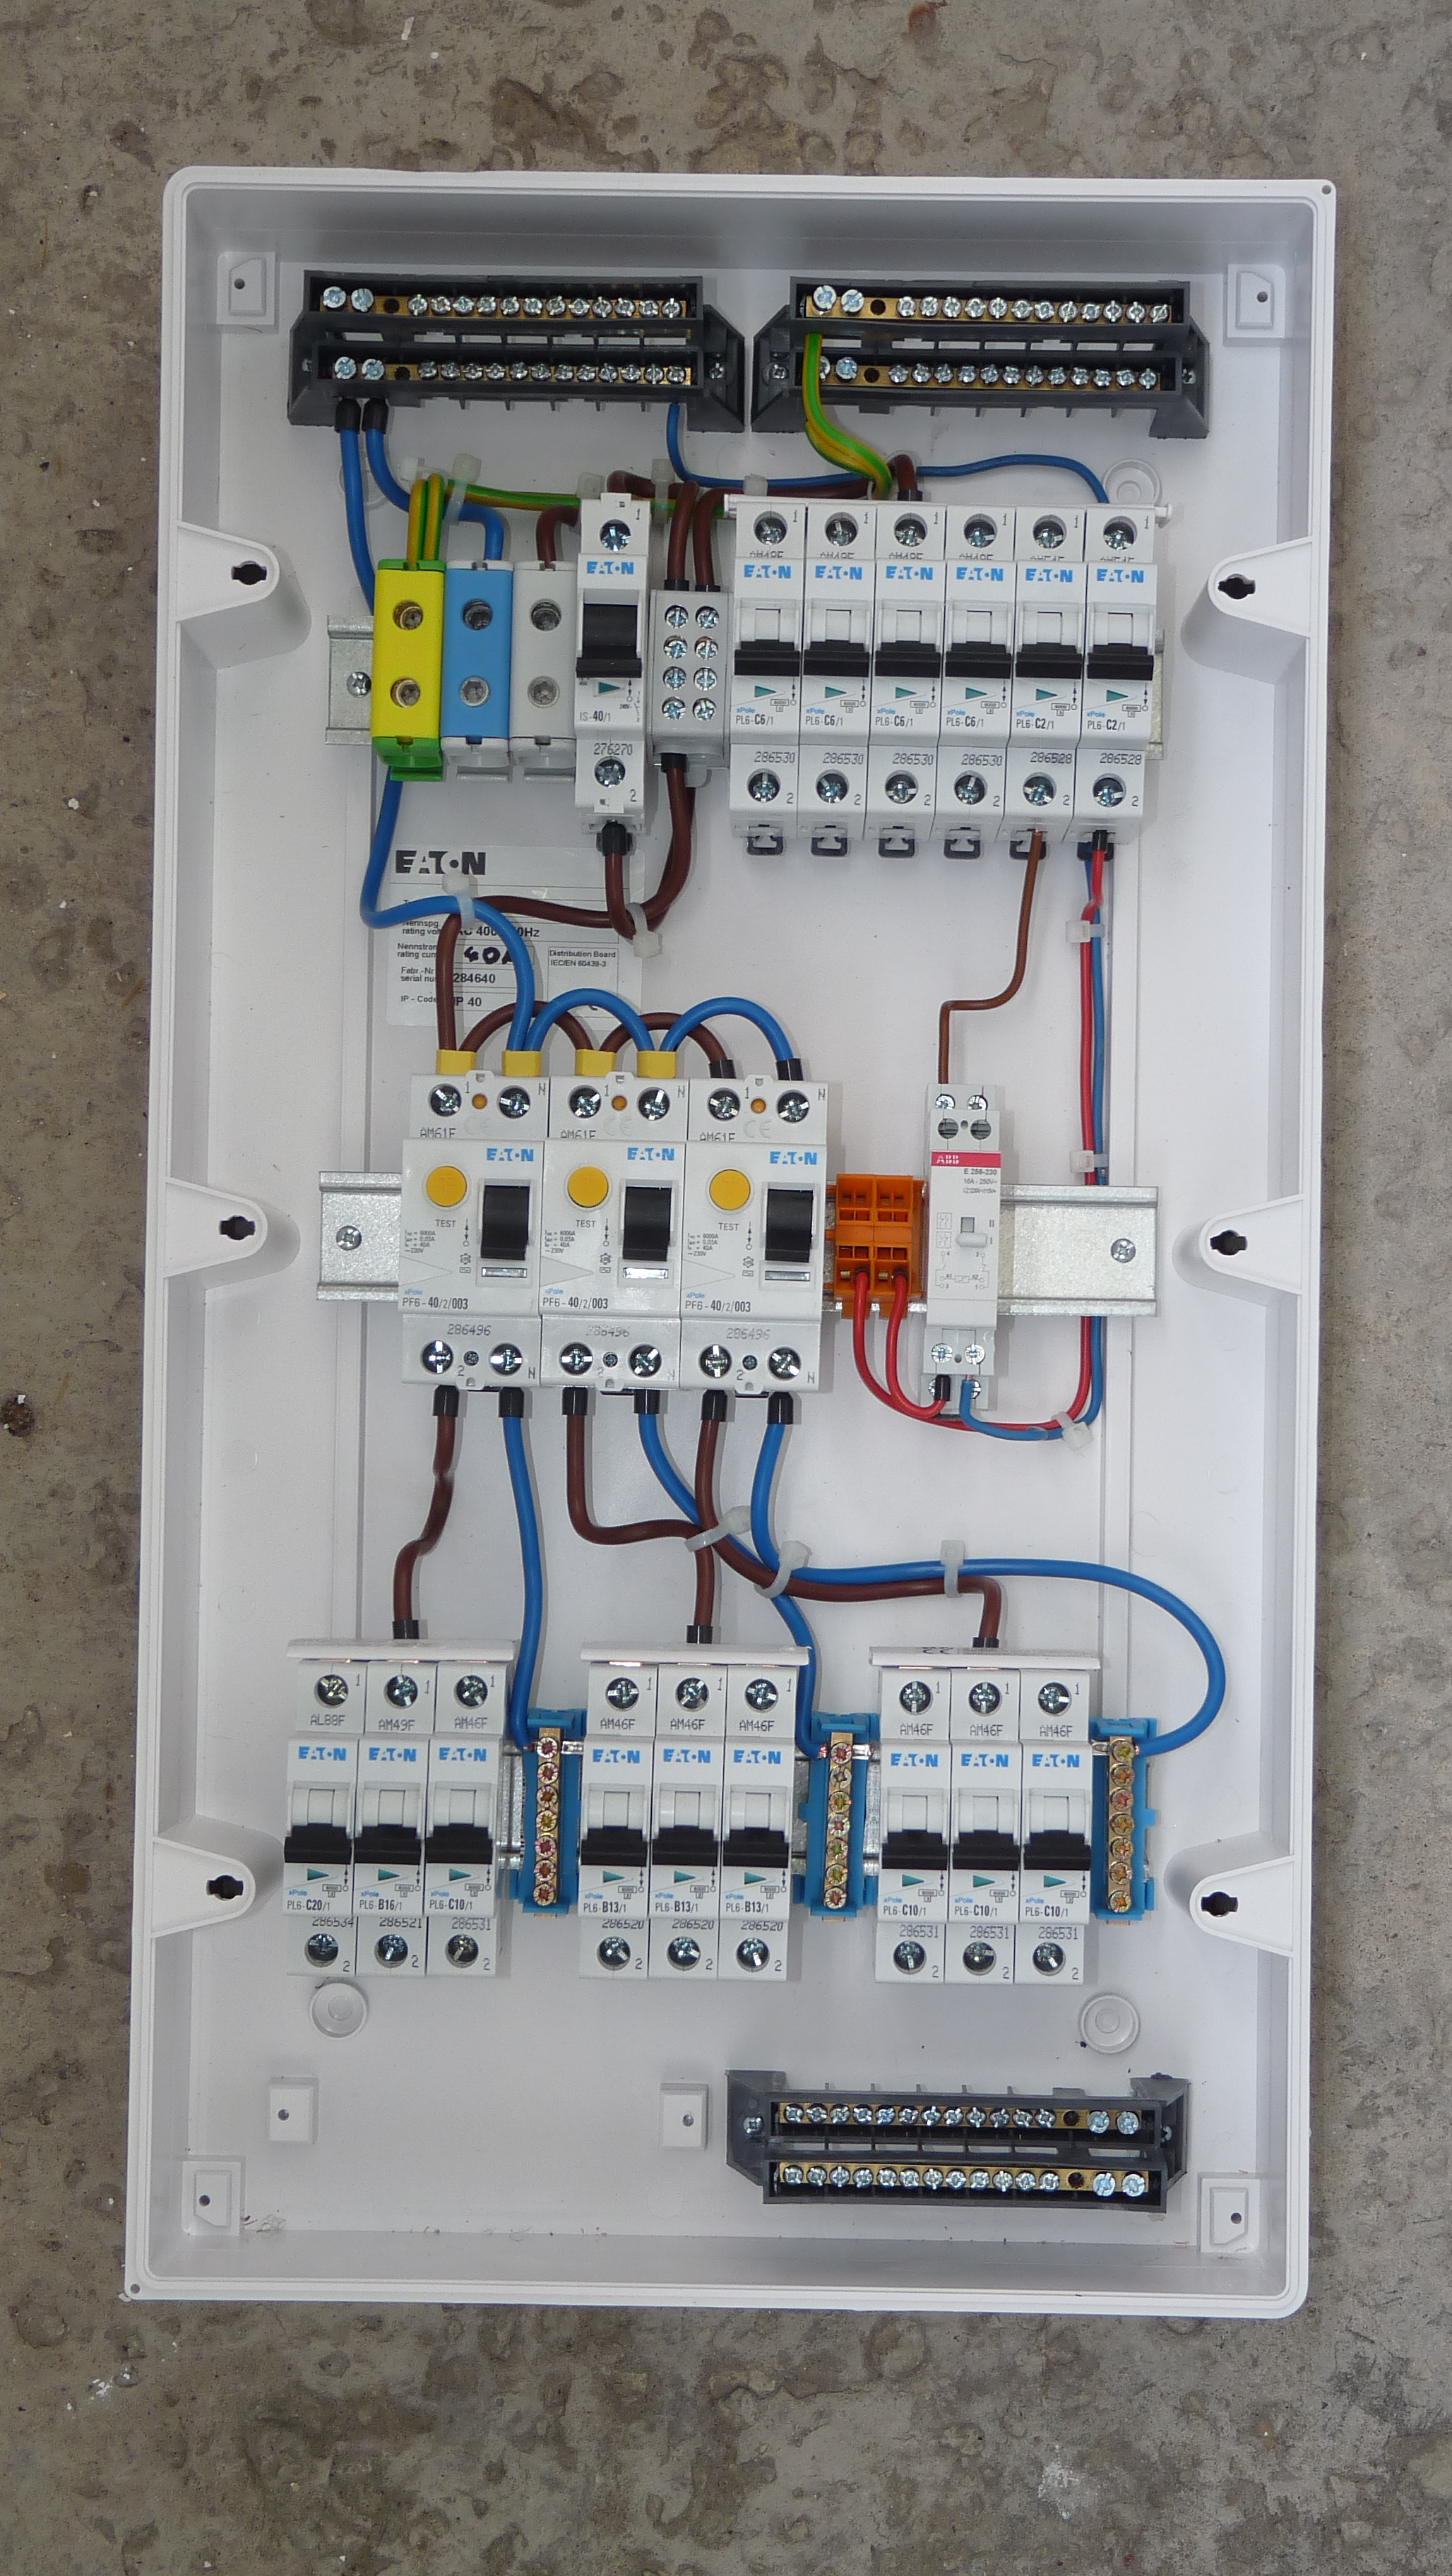 House Fuse Box Completed Wiring Diagrams Diagram Lights Home Tube Database Library Water Pump Simple